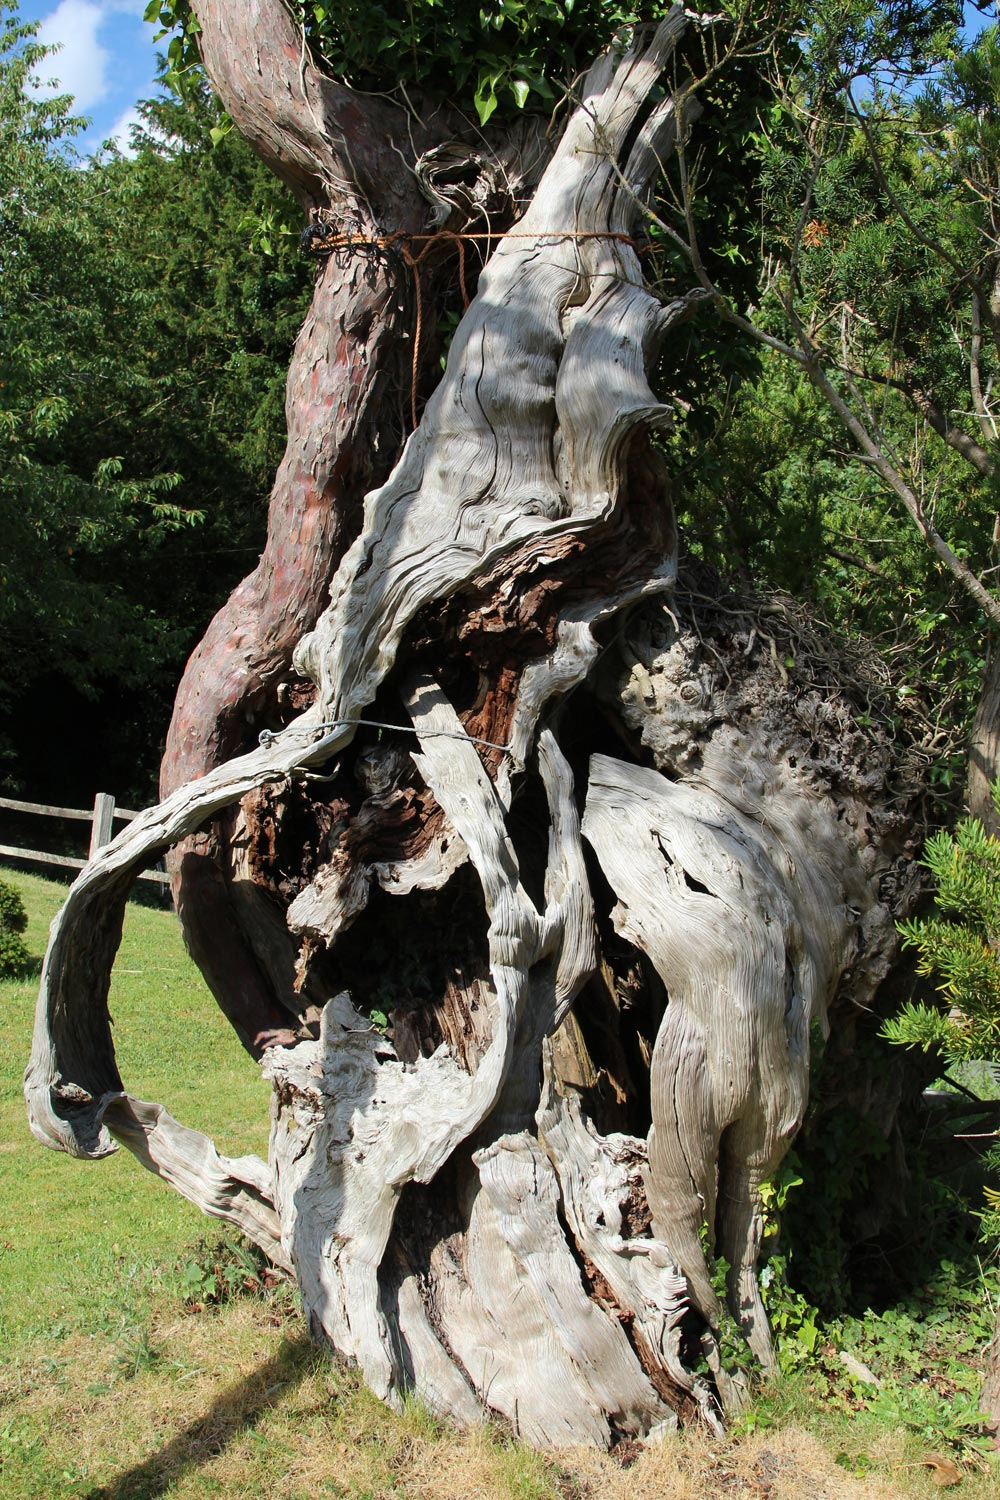 Remains of the 1,000 year old yew tree, St. Mary's Churchyard, Aldworth